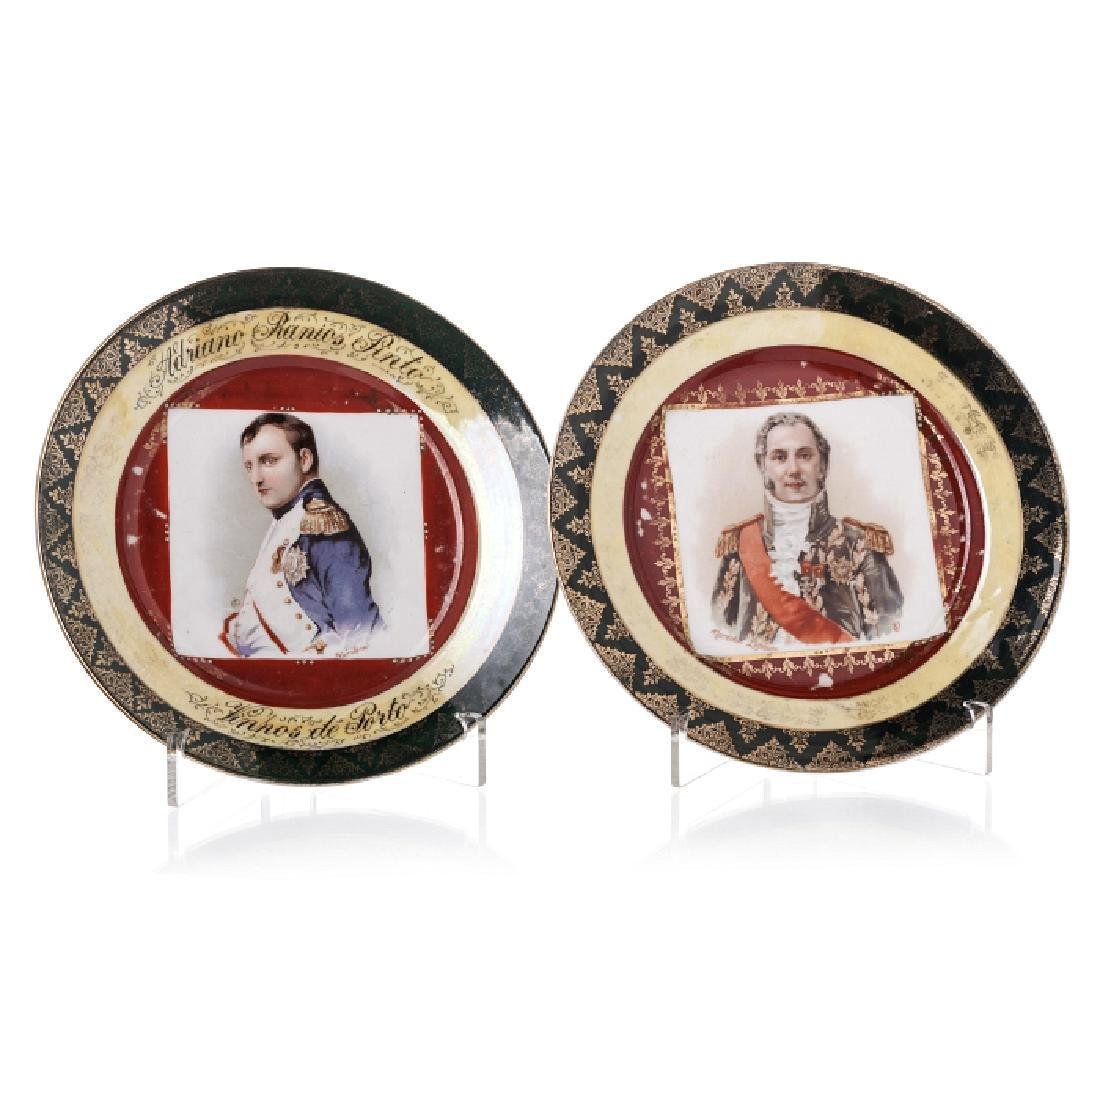 Pair of plates 'Marechal Lefebure and Napoleon'